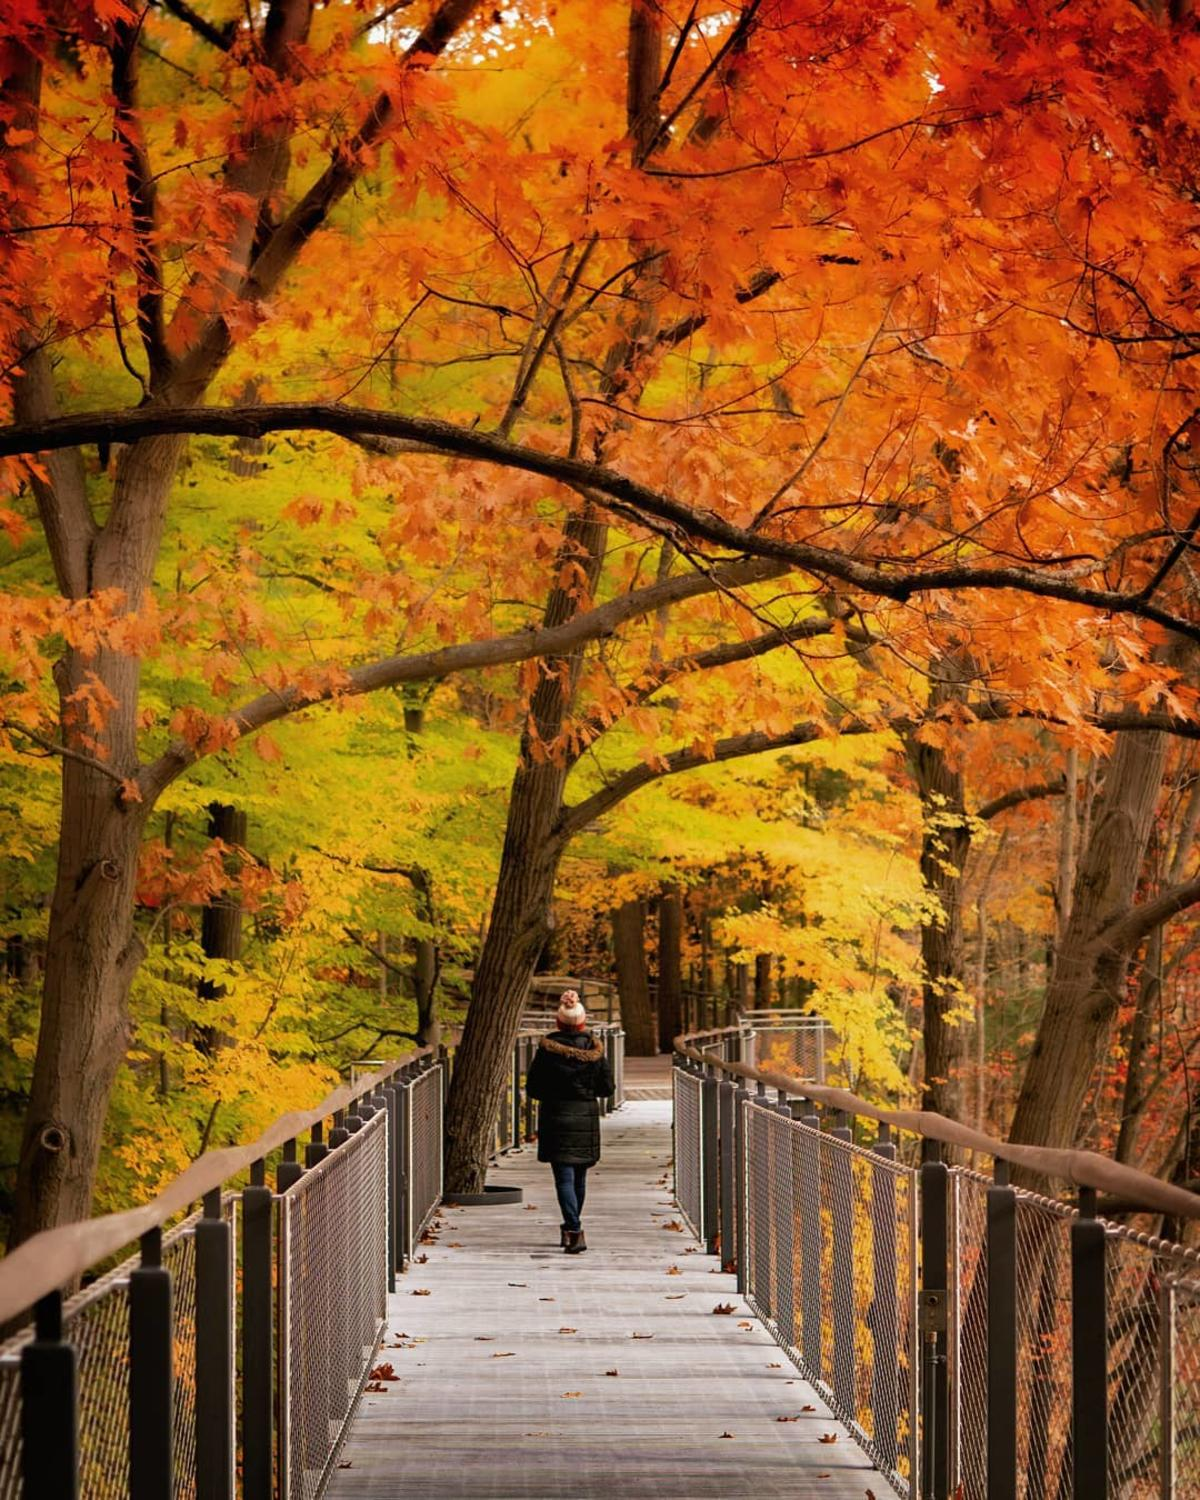 Woman walking through the fall-tinted trees on the Canopy Walk at Whiting Forest of Dow Gardens in Midland